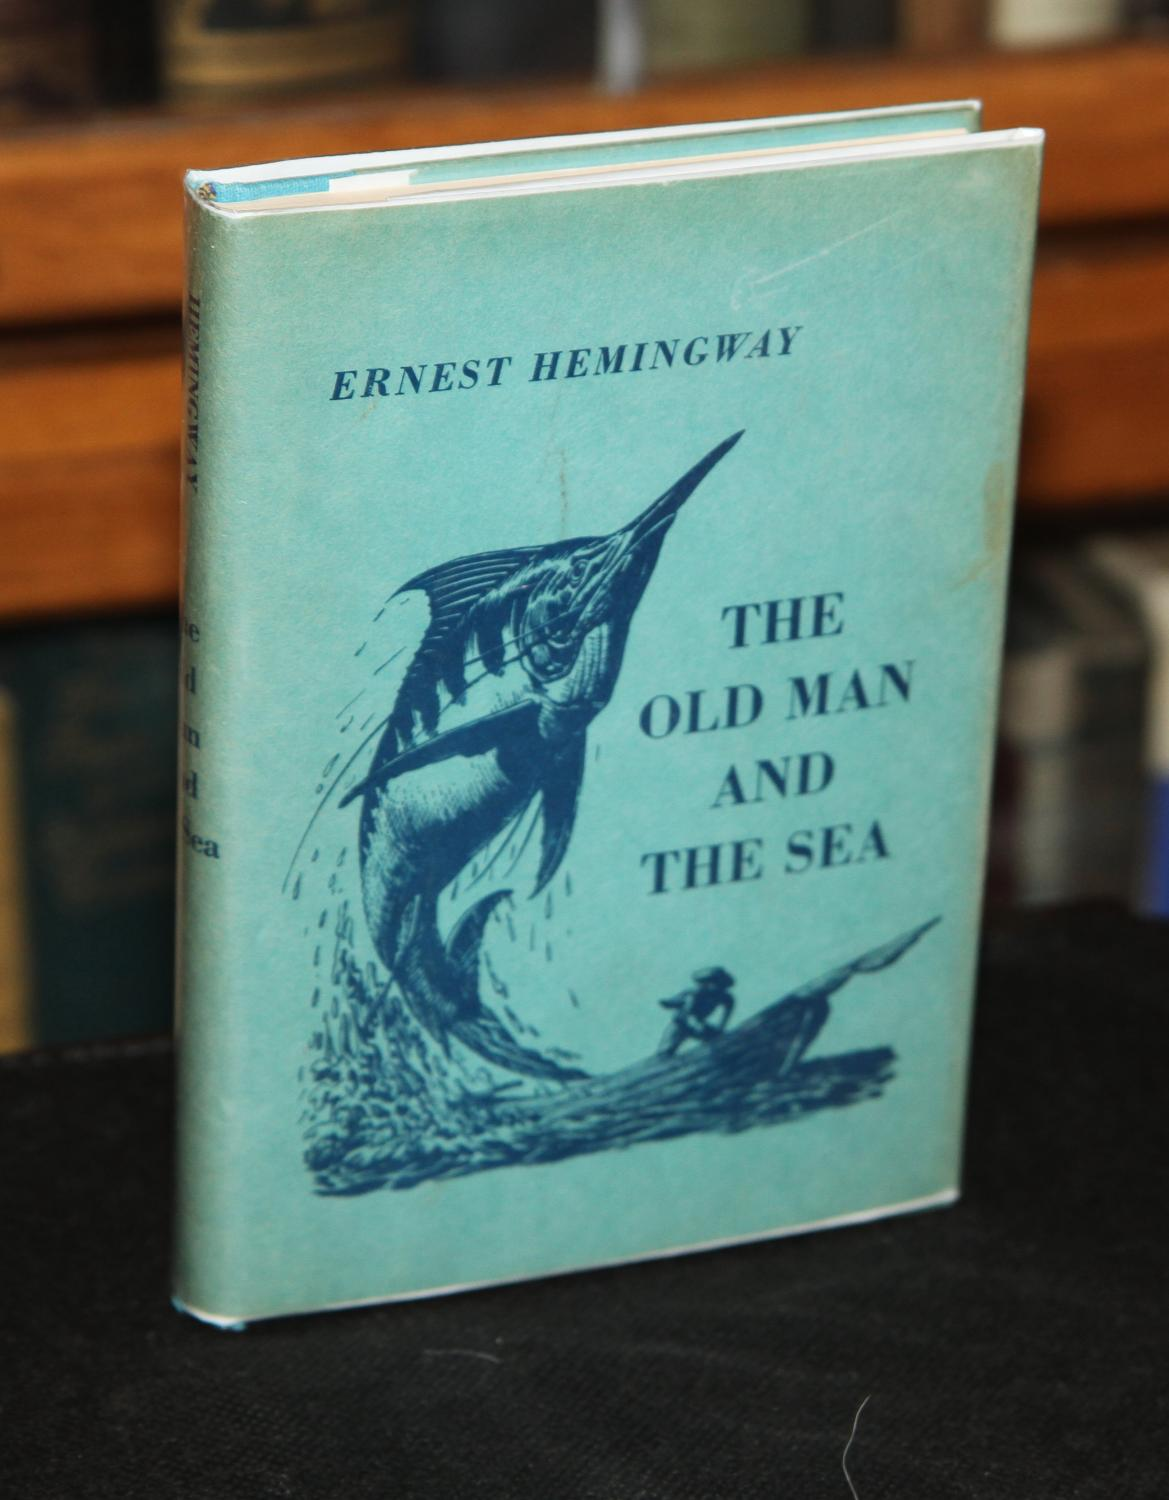 a report on the old man and the sea by ernest hemingway and the crucible by arthur miller After the first day, throughout the voyage, it is santiagos thoughts and feelings that are emphasized on the final day after his voyage, again we are led through all of santiagos actions the limited setting is an important part of this simplistic hemingway style as it eliminates unnecessary confusion in the.